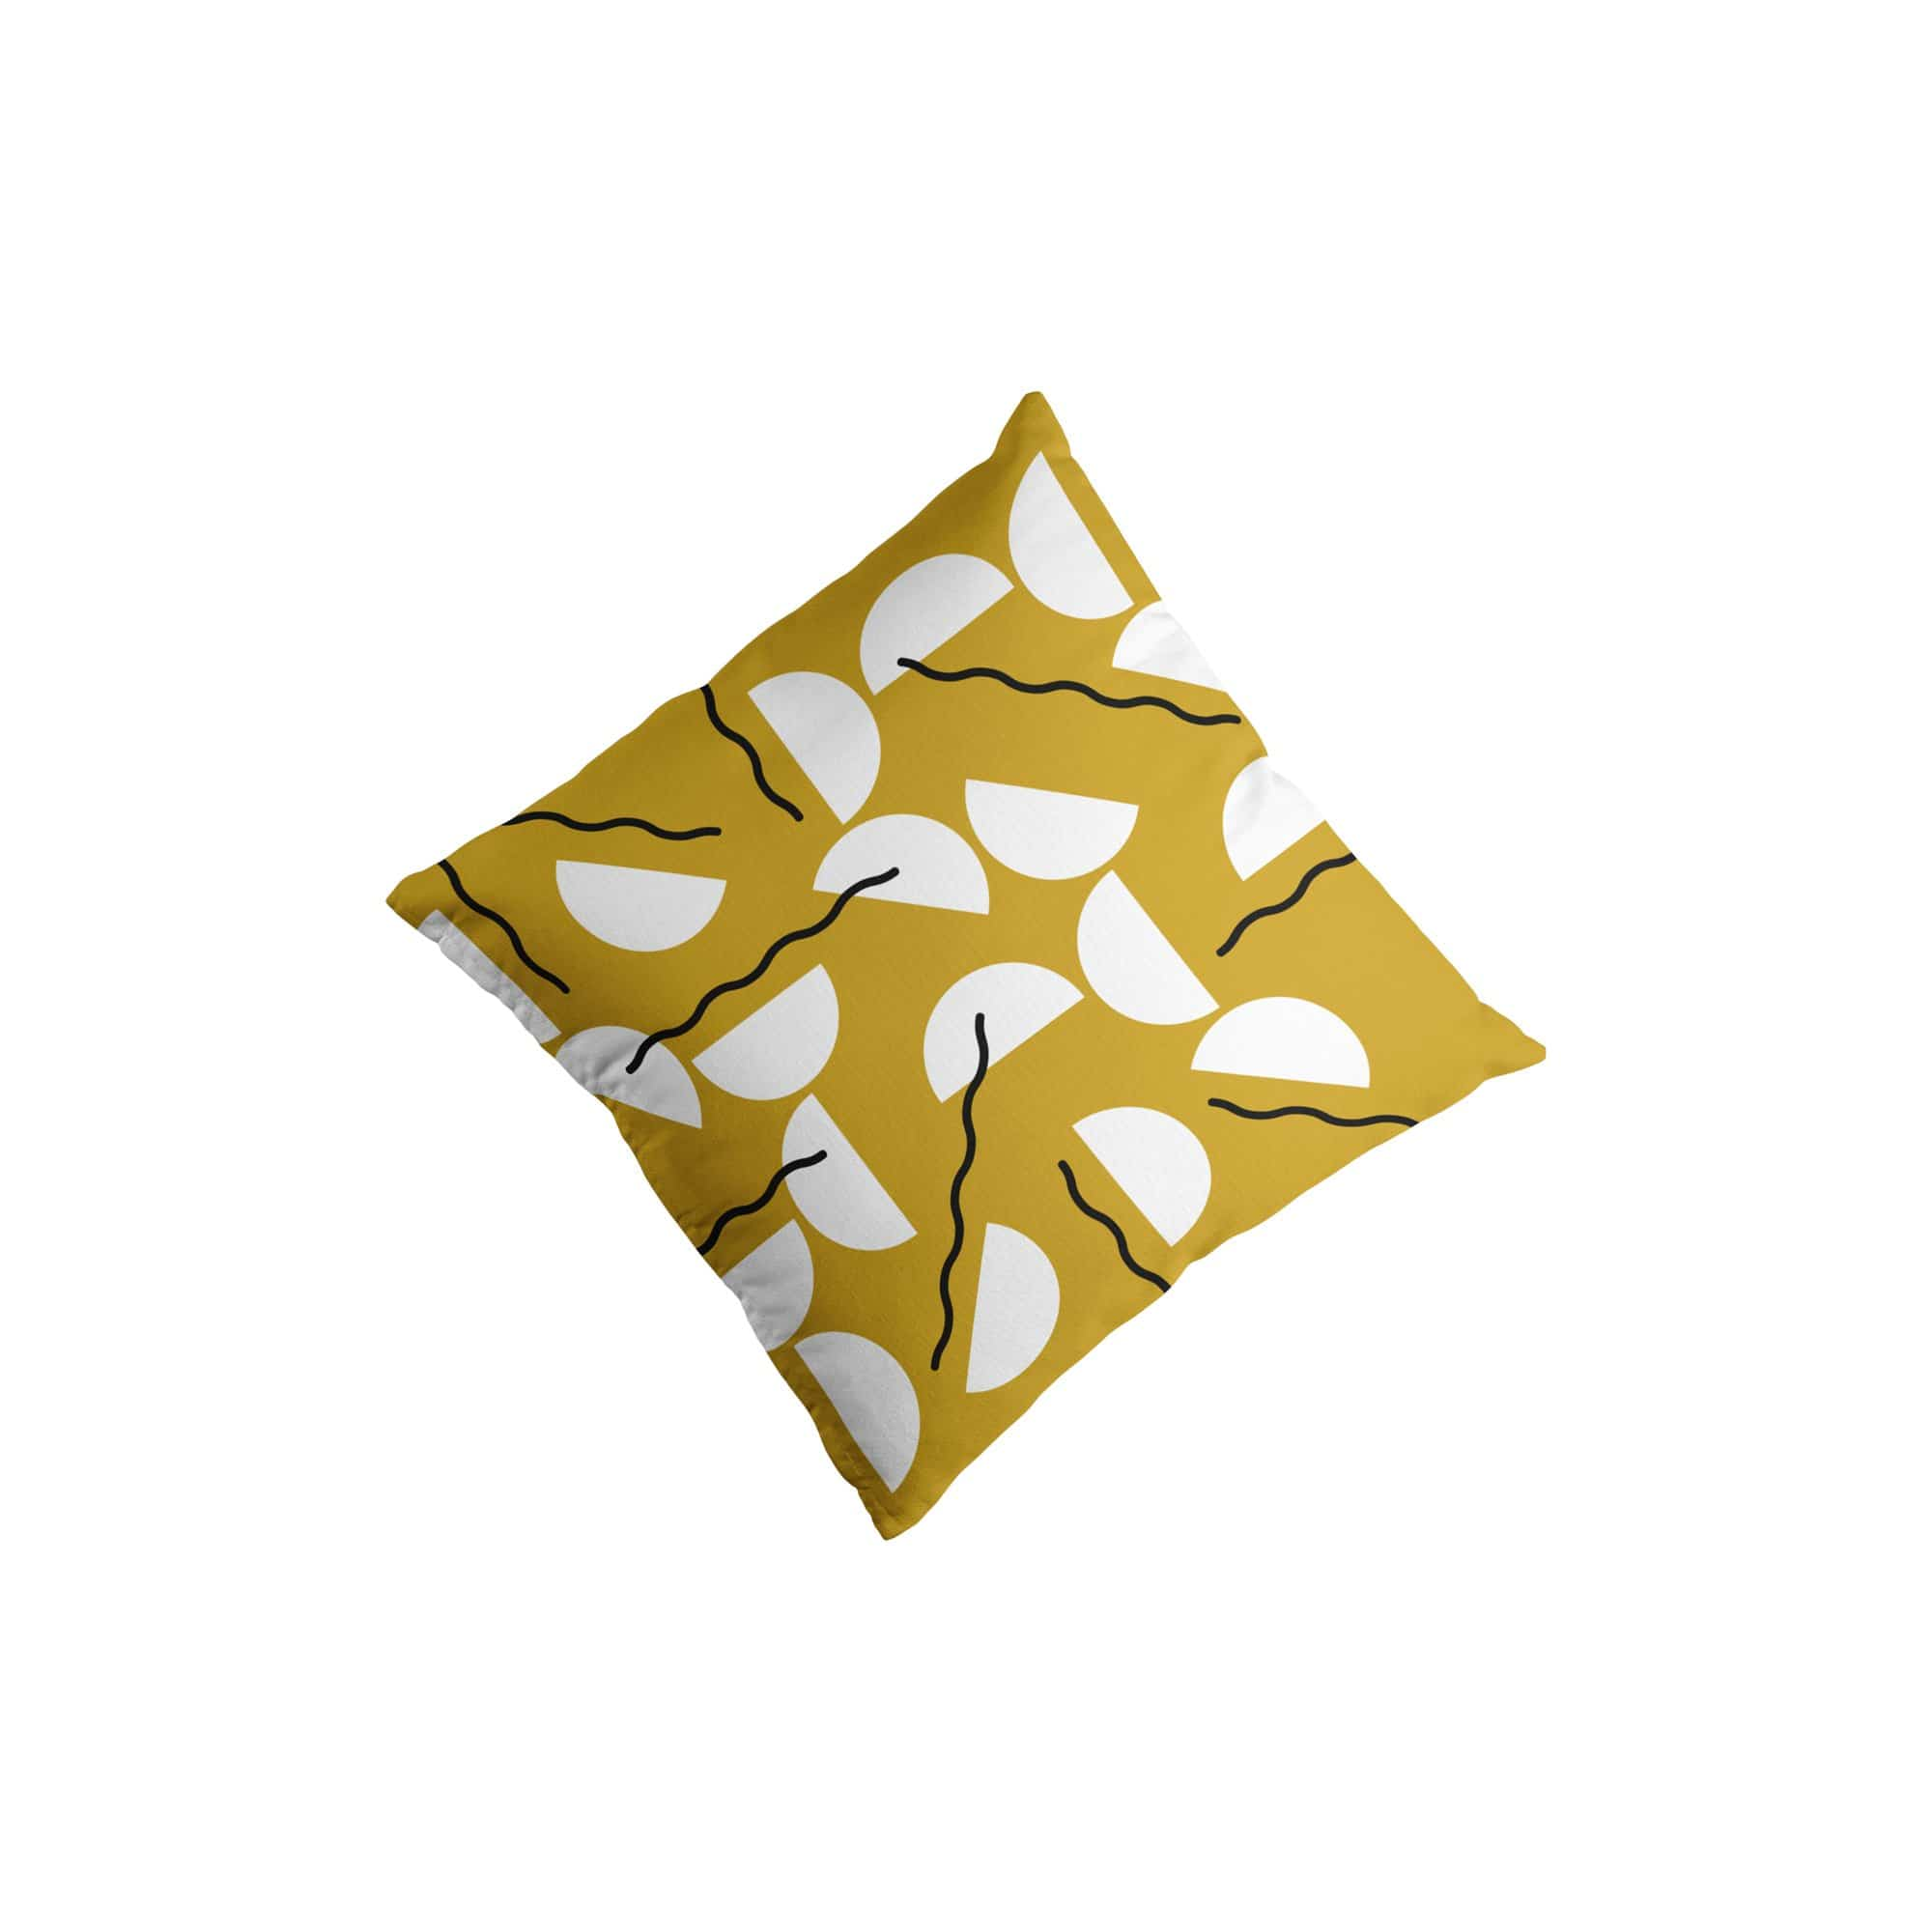 Swell Made Co. Cushions + Throws Gold Waves Throw Pillow Cover